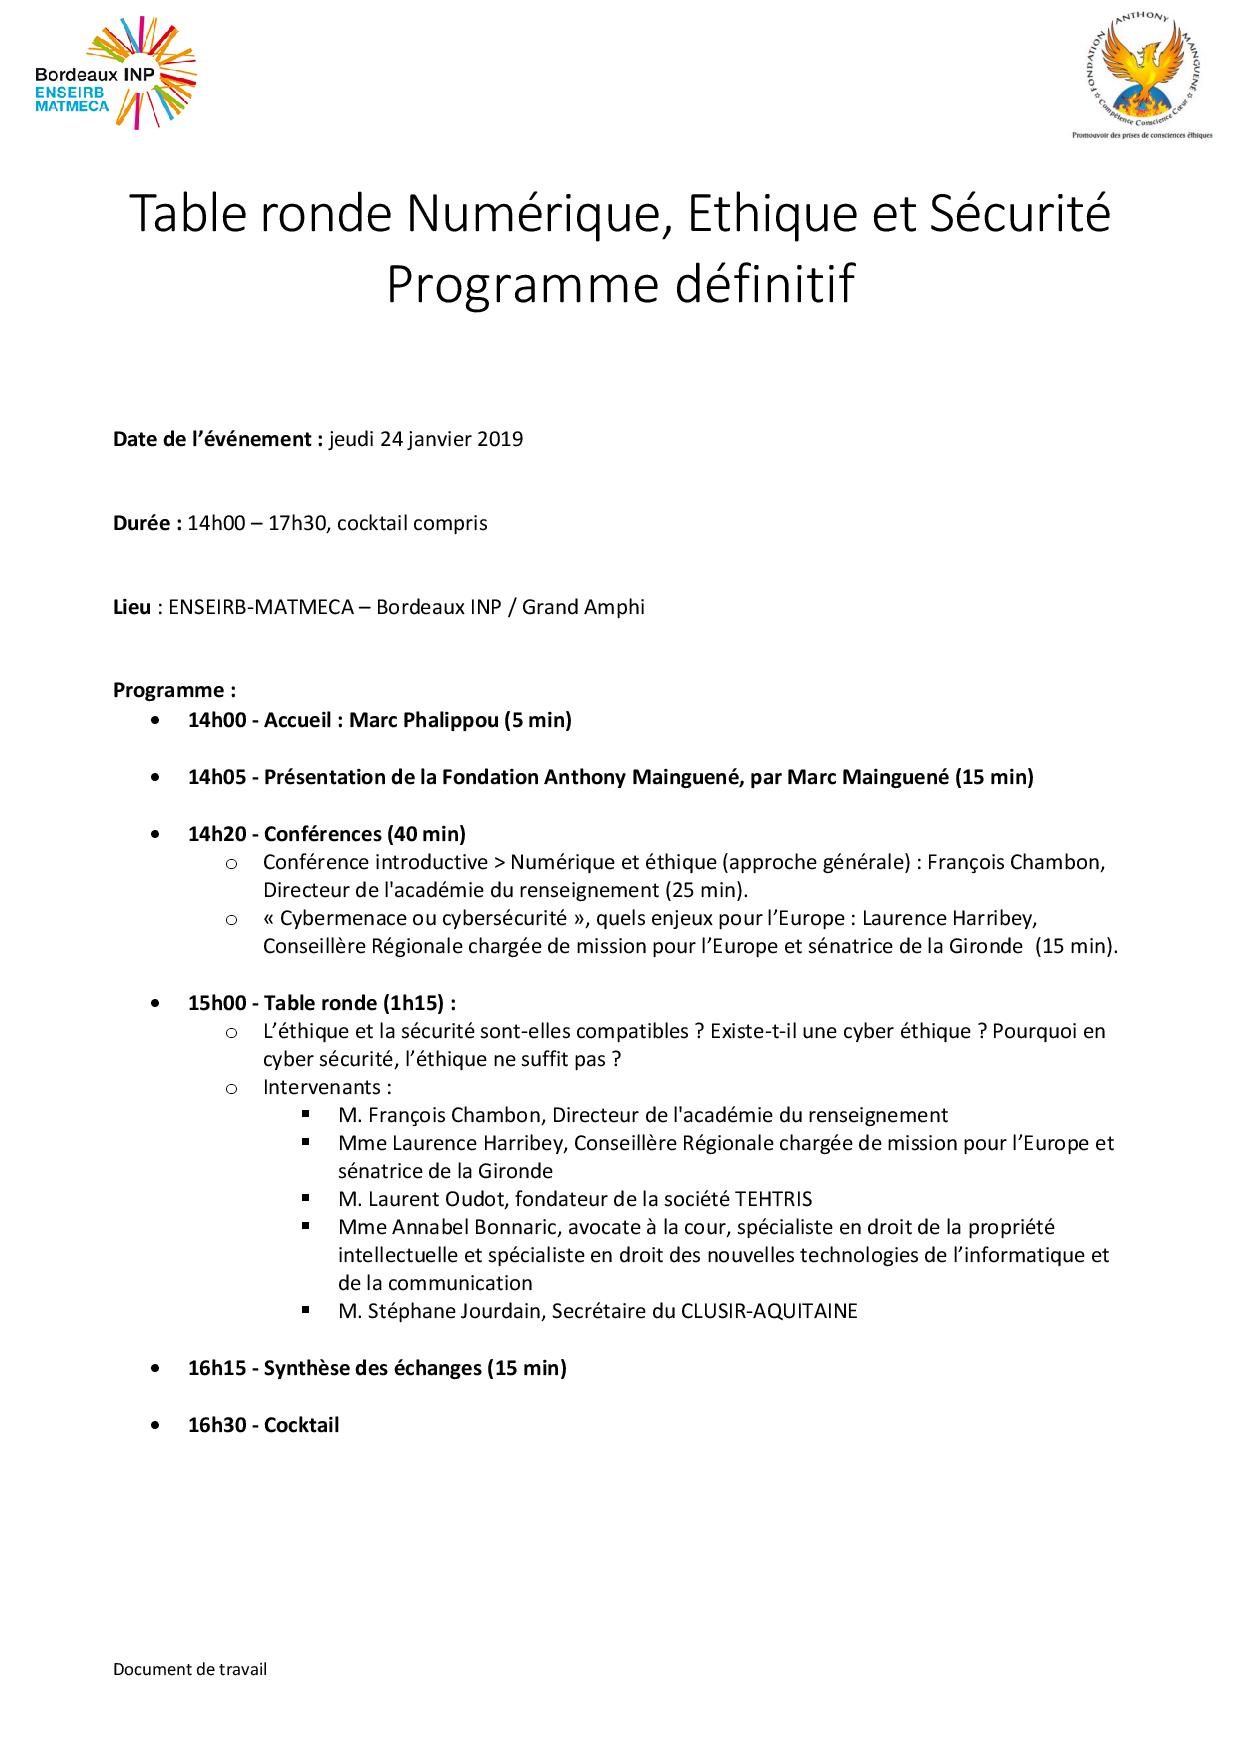 Programme tableronde ethique securite 24 01 19 page 001